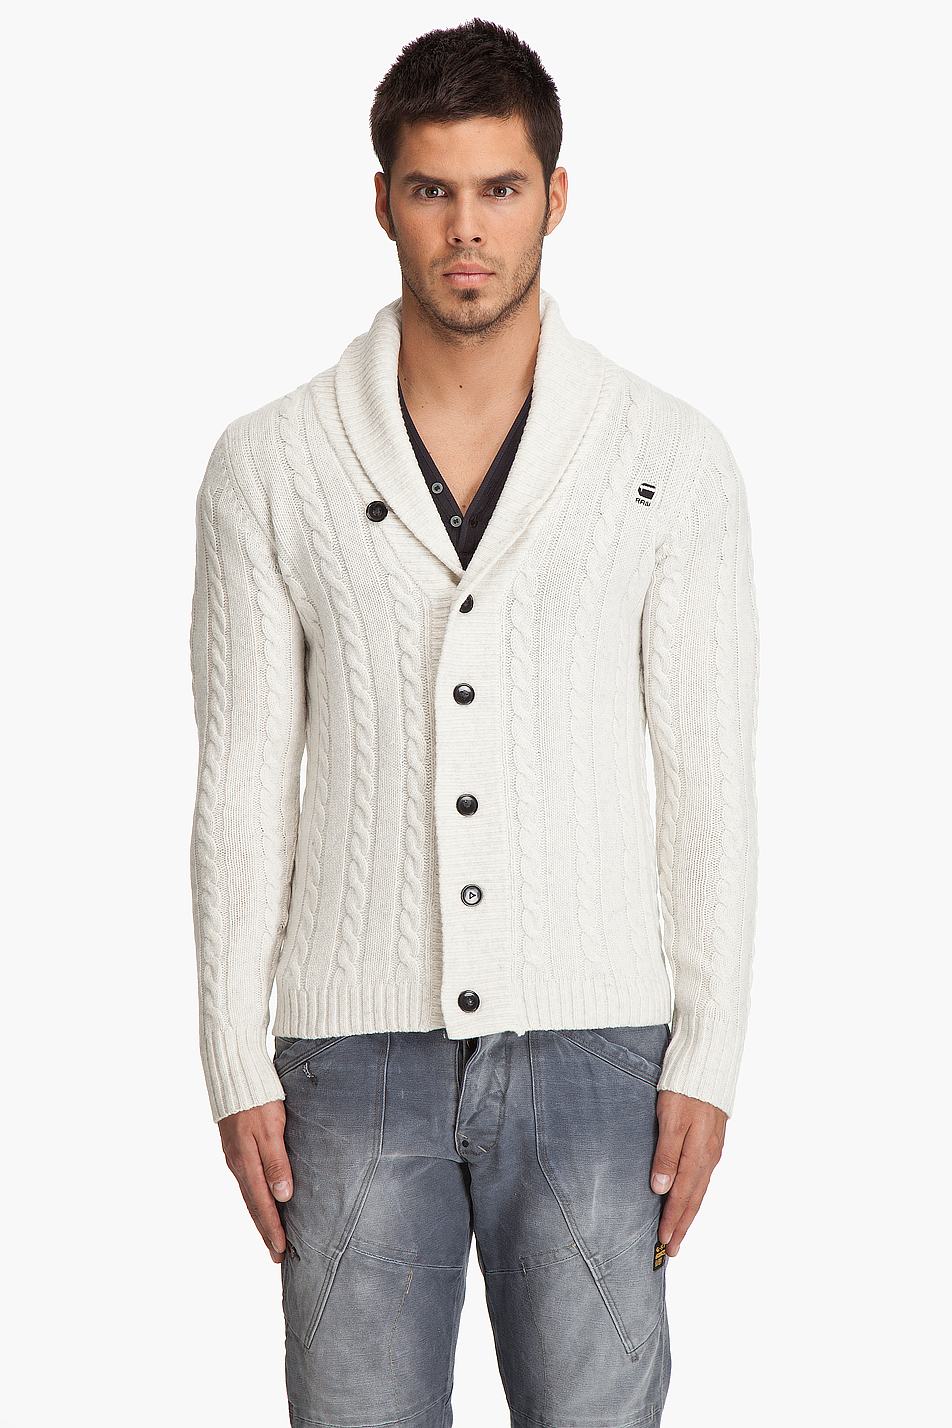 g star raw east shawl cardigan in beige for men cream lyst. Black Bedroom Furniture Sets. Home Design Ideas